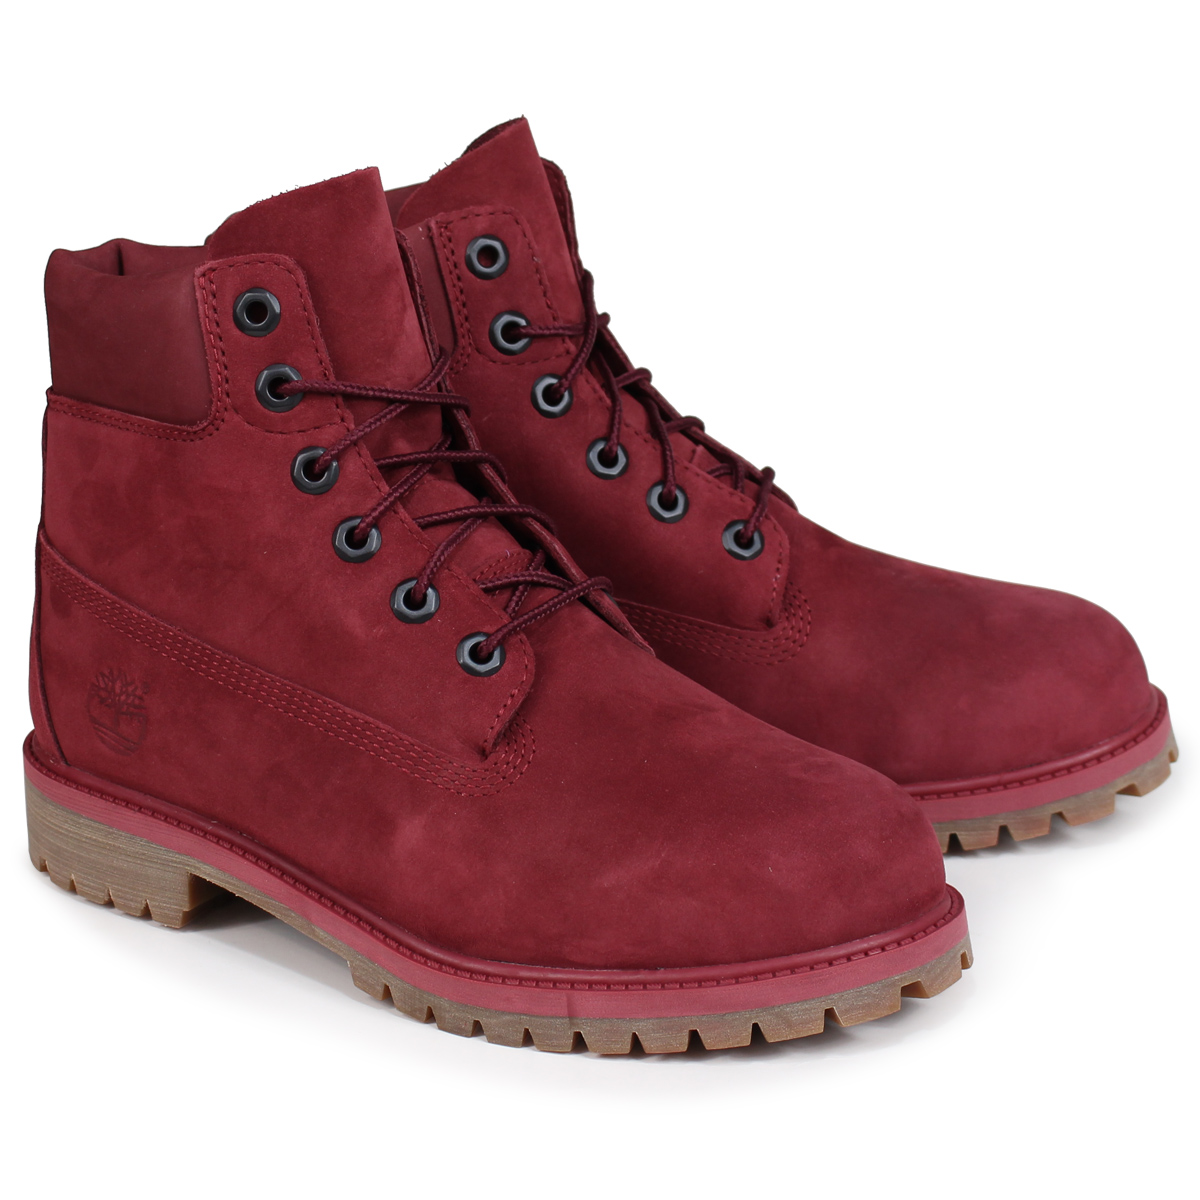 Timberland JUNIOR 6INCHI PREMIUM WATERPROOF BOOT Timberland Lady's boots 6 inches kids A1VCK W Wise waterproofing wine red